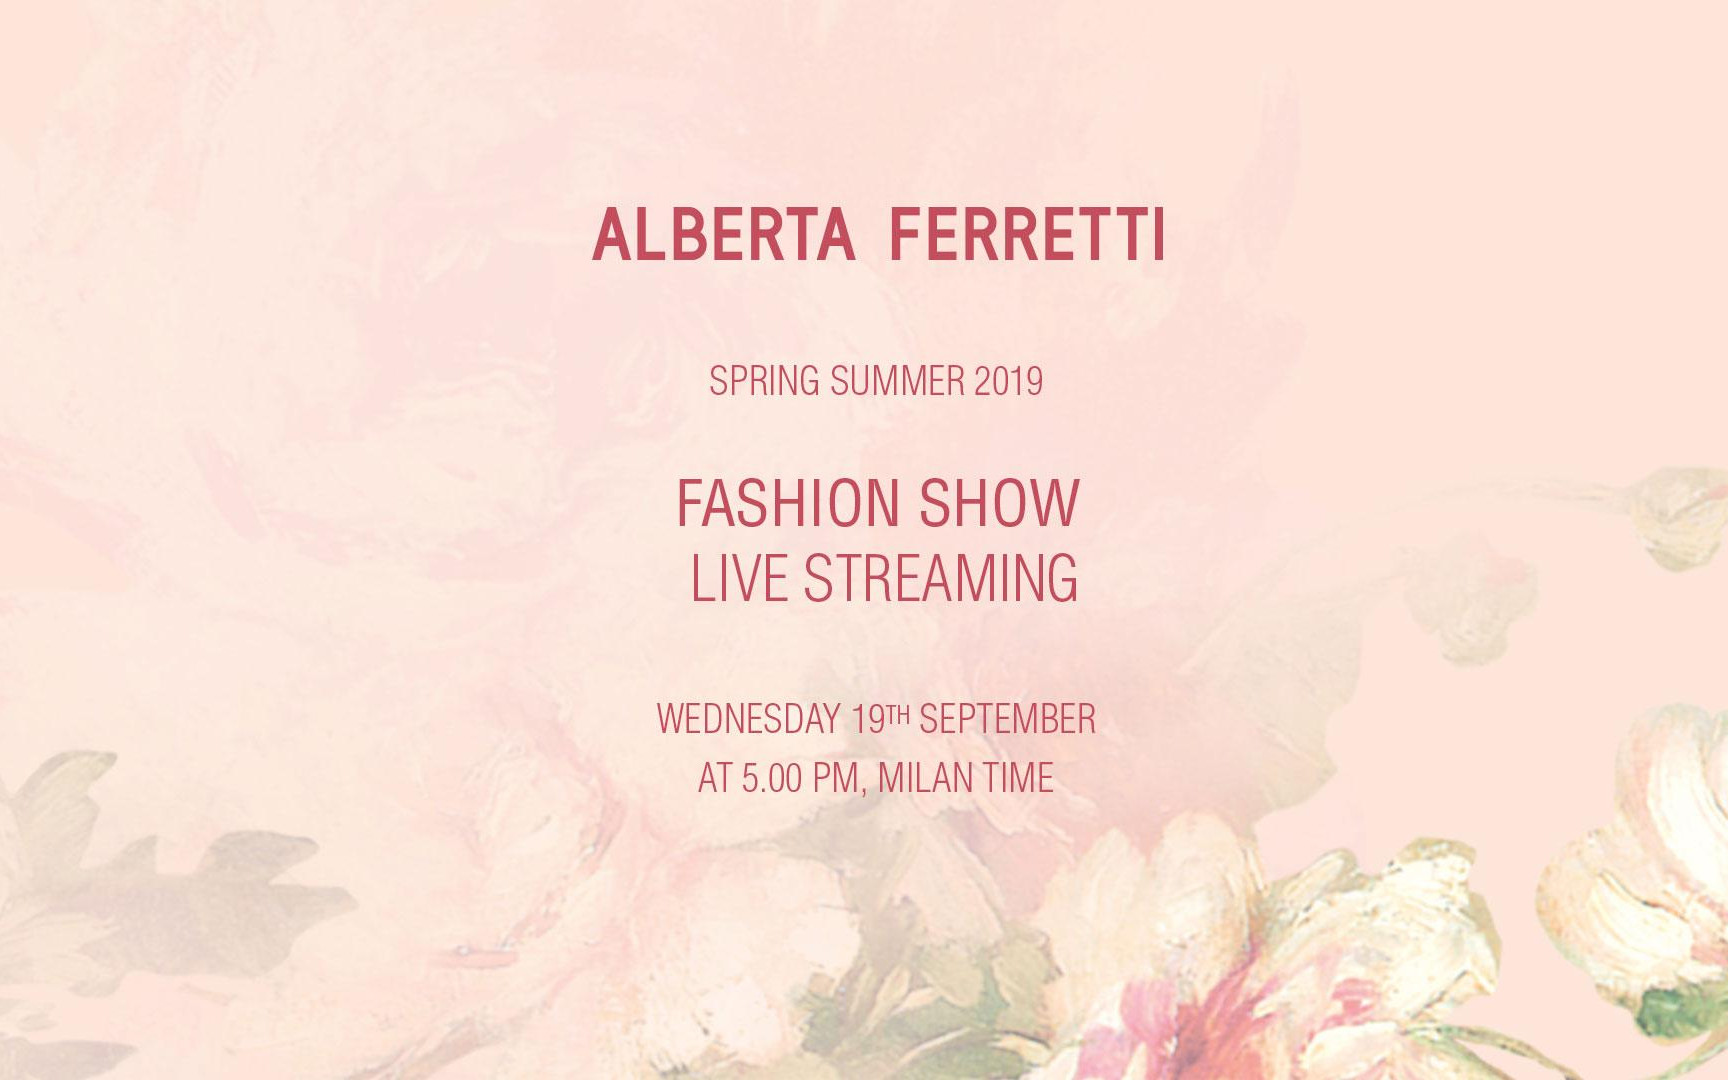 Alberta Ferretti Spring Summer 2019 Fashion Show Live Streaming